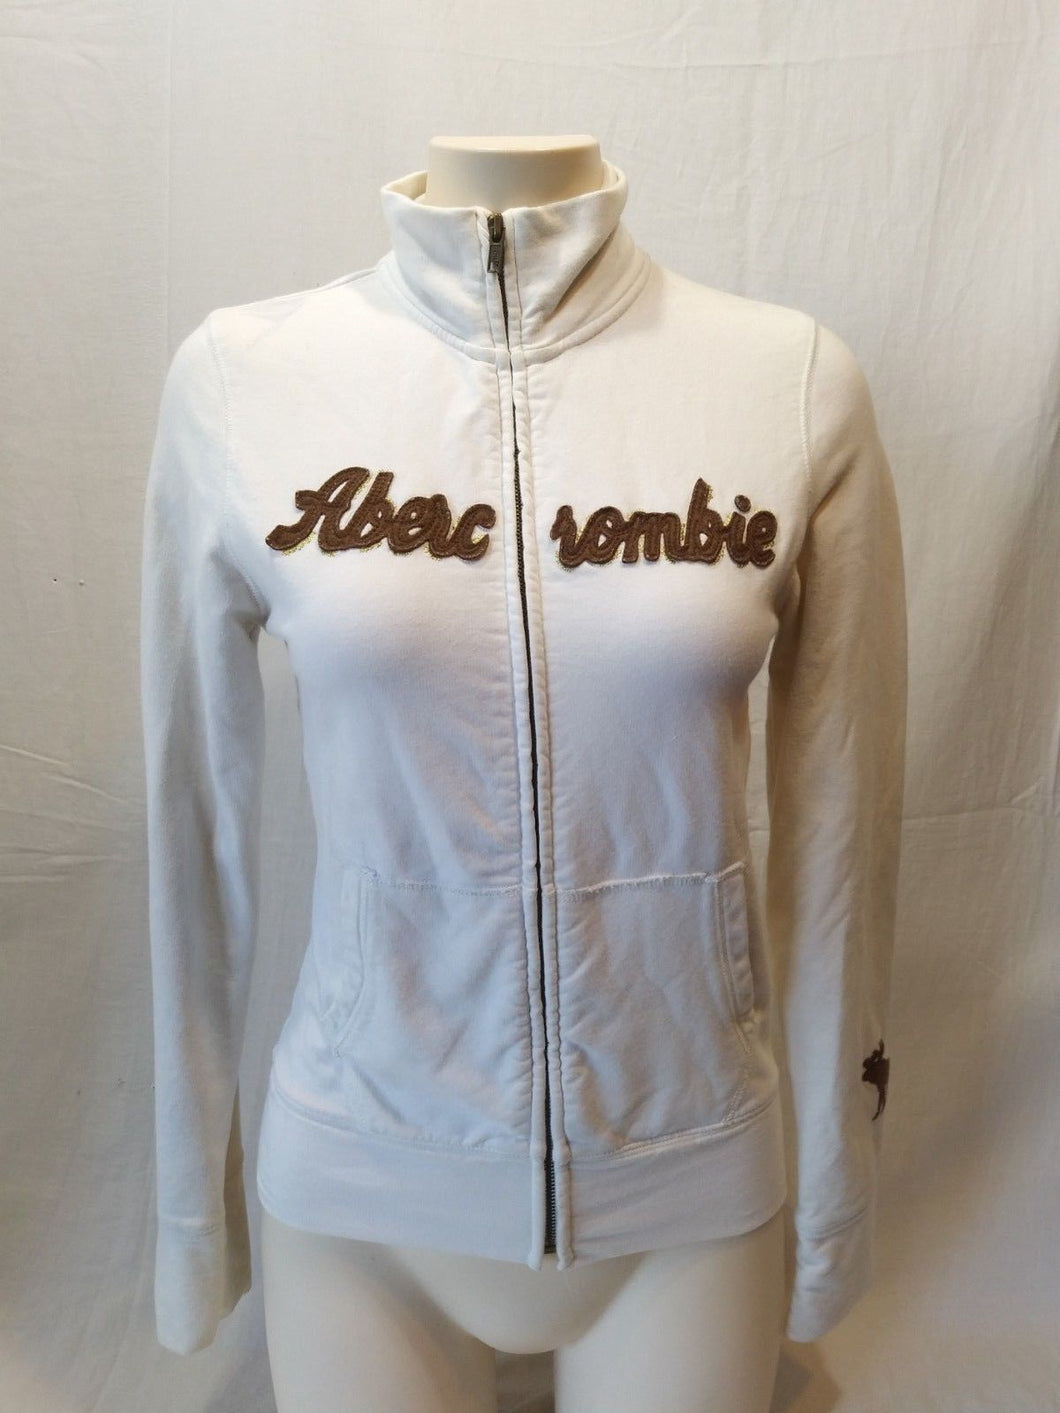 Abercrombie and Fitch Women's White Long Sleeve Full Zip Spell Out Jacket Size M